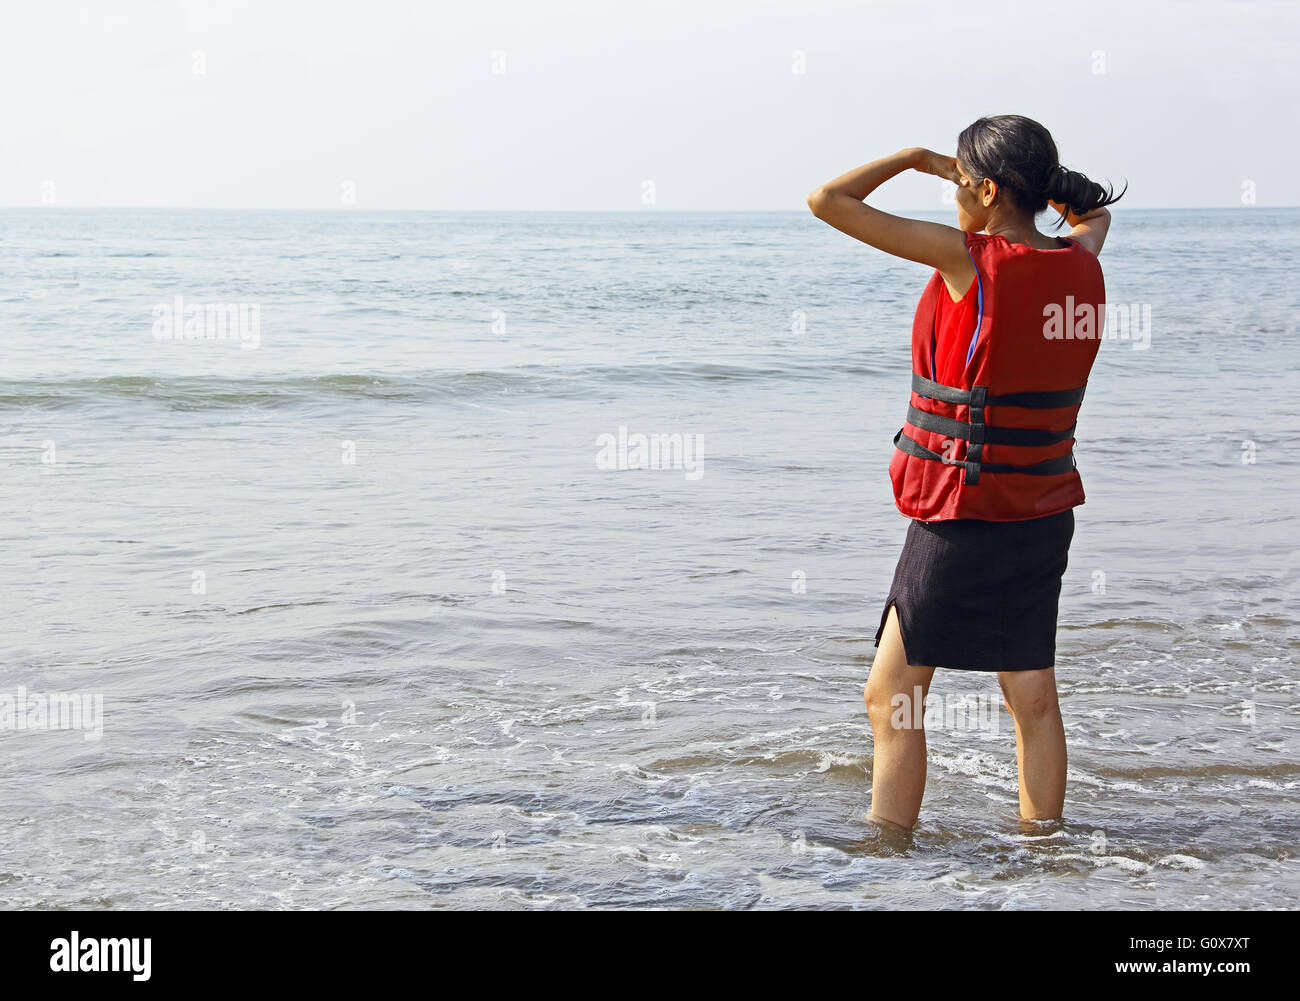 Teen girl in life jacket waiting at the beach in Goa, India, ready for water sport activities - Stock Image